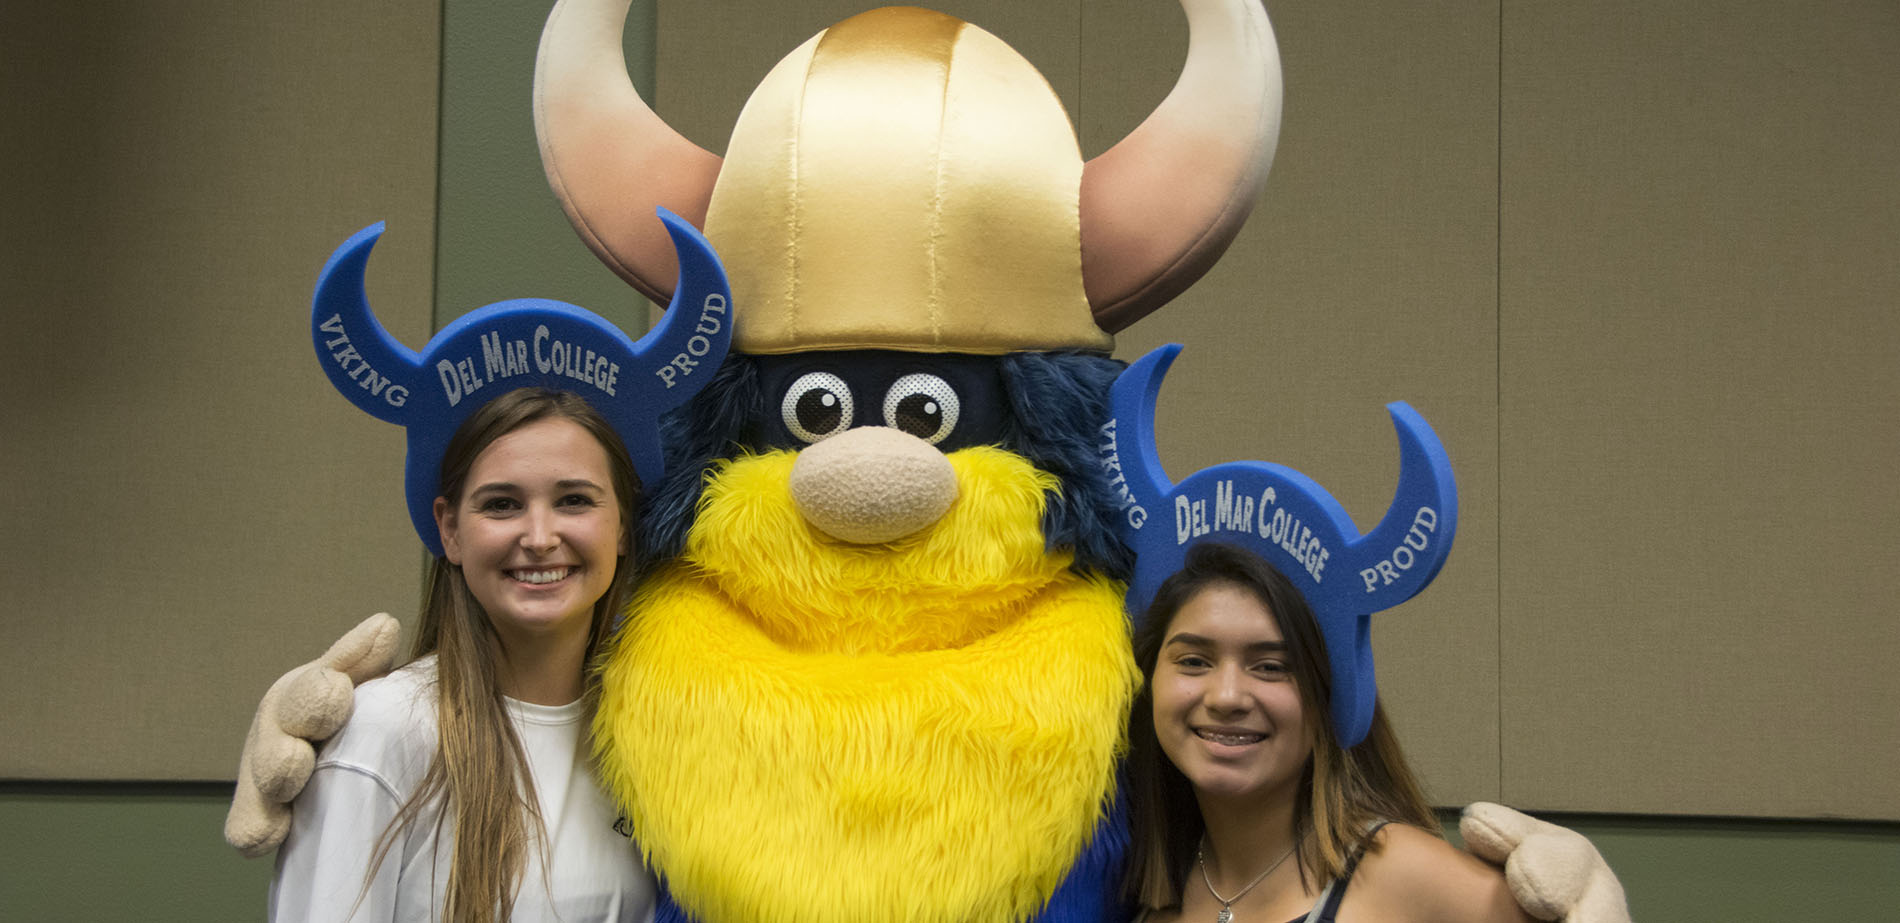 Valdar the Viking mascot poses with prospective students at orientation